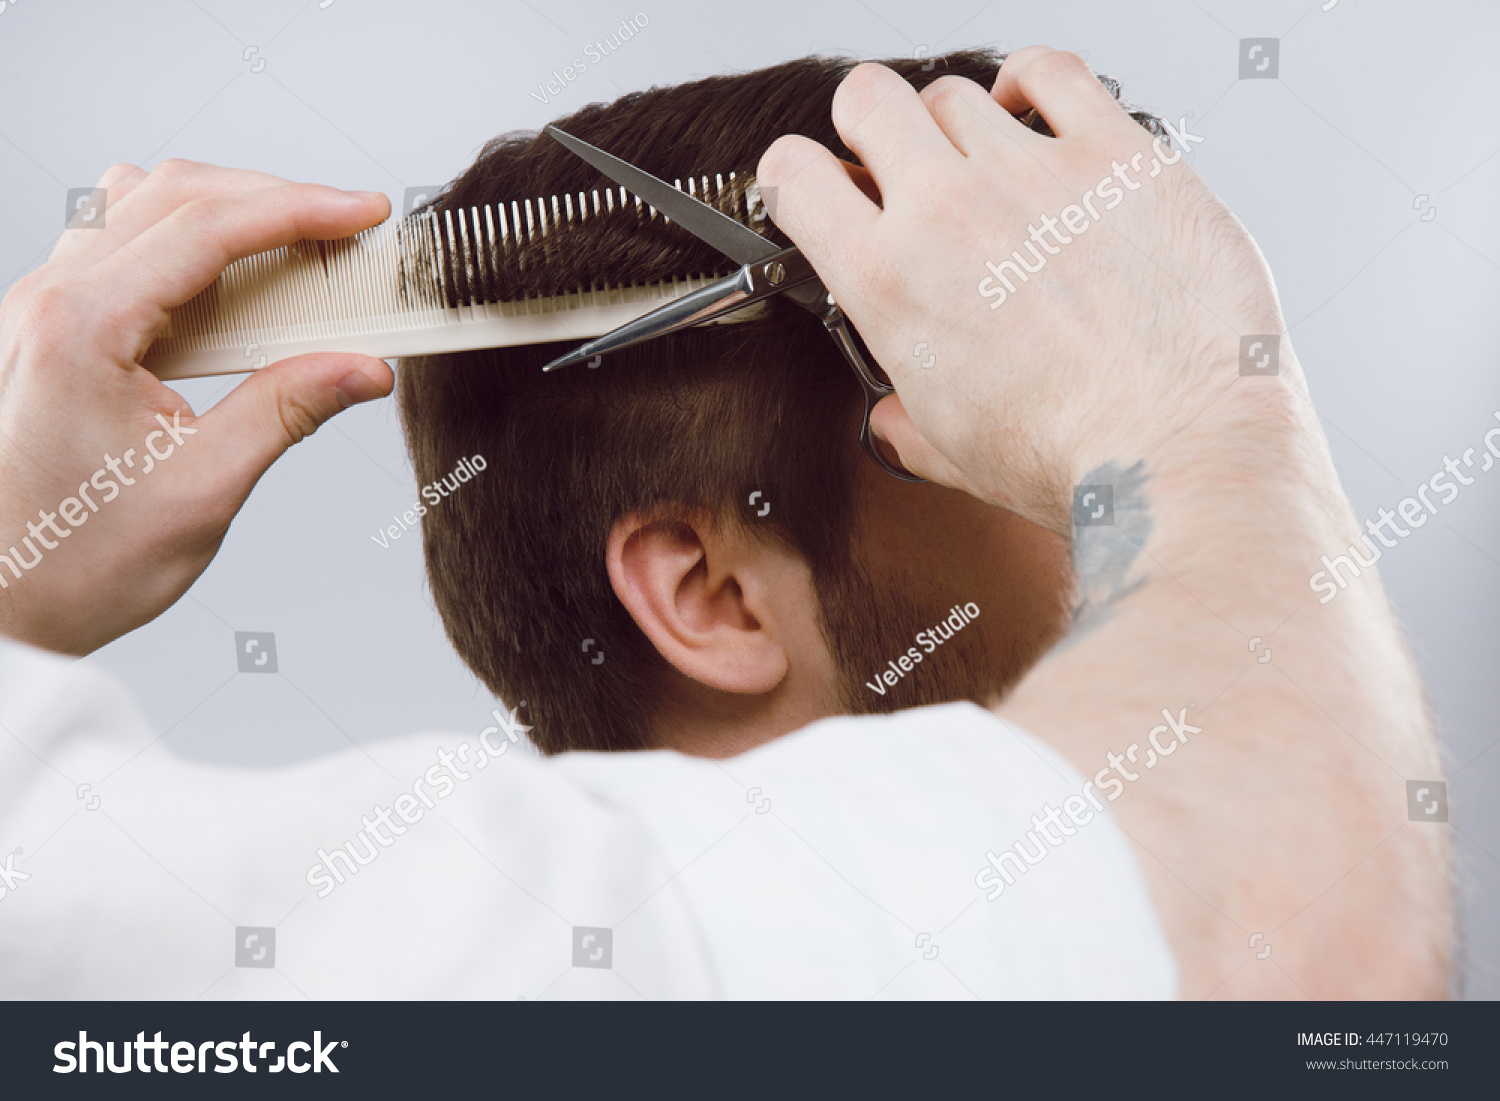 Barbers Hands Tattoos Doing Haircut Darkhaired Stock Photo Edit Now